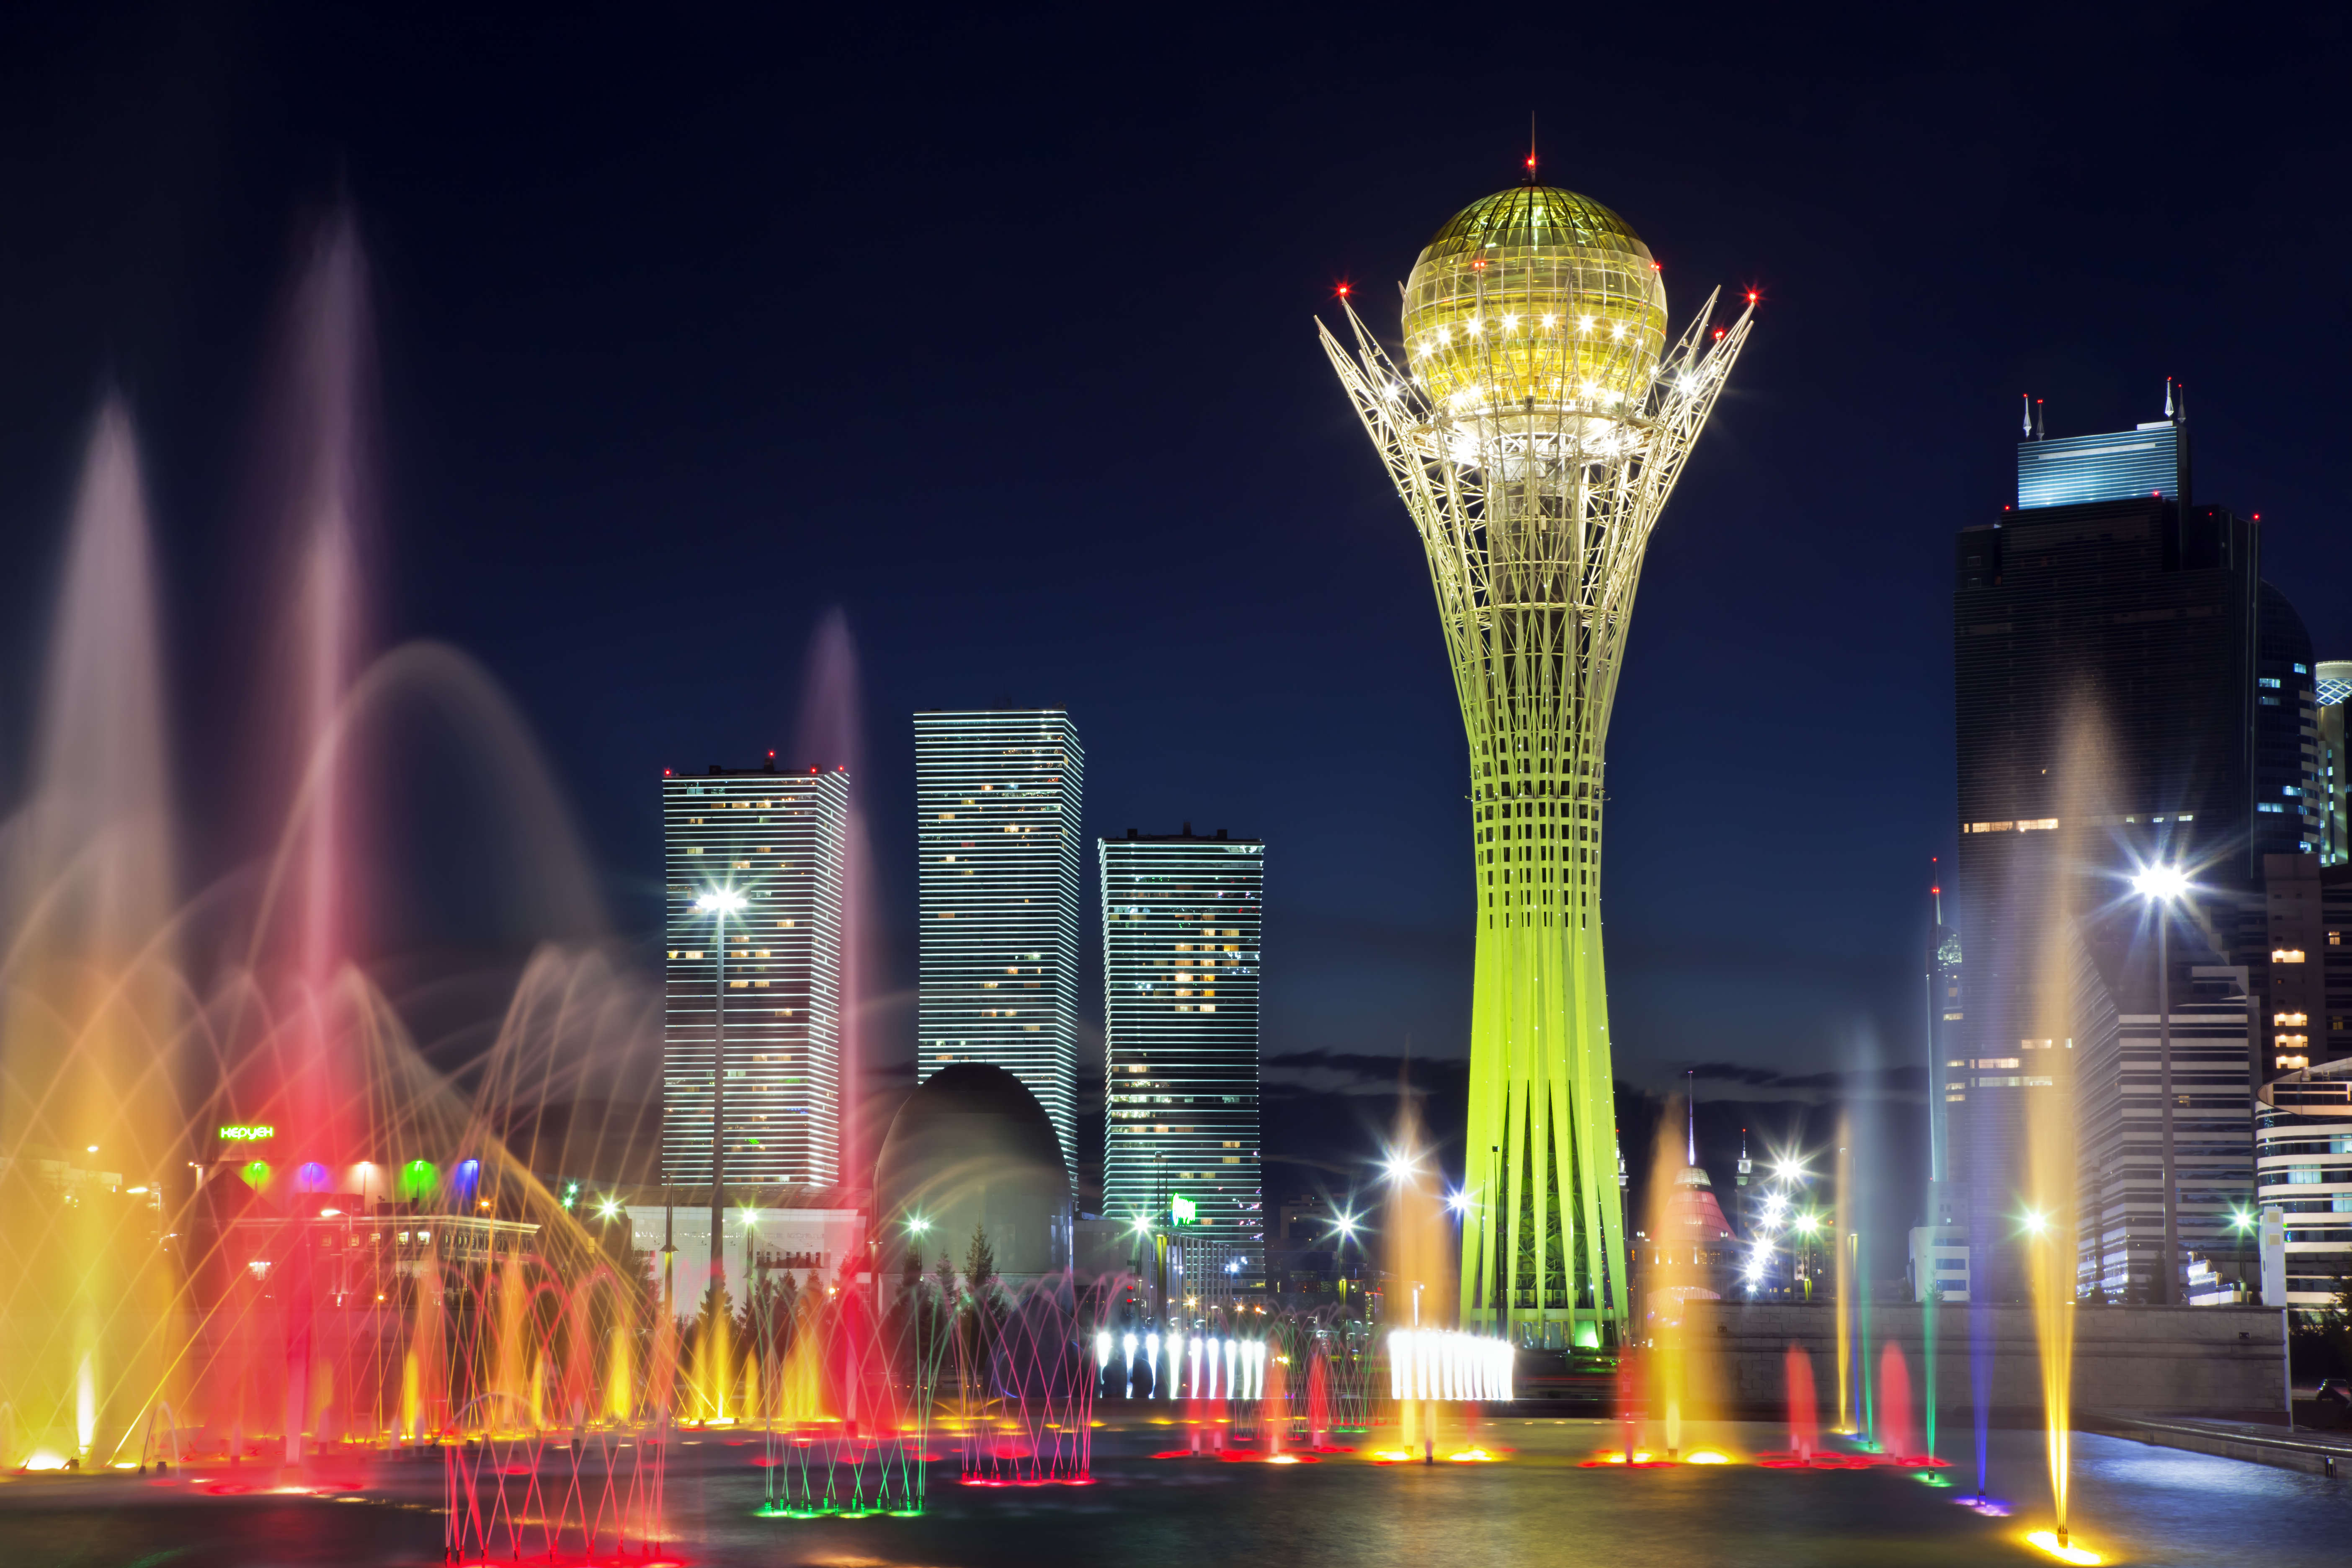 Nur-Sultan, Kazakhstan, Institute of Functional Neurology n.a. Jose Palomar - Foundation Series 2020